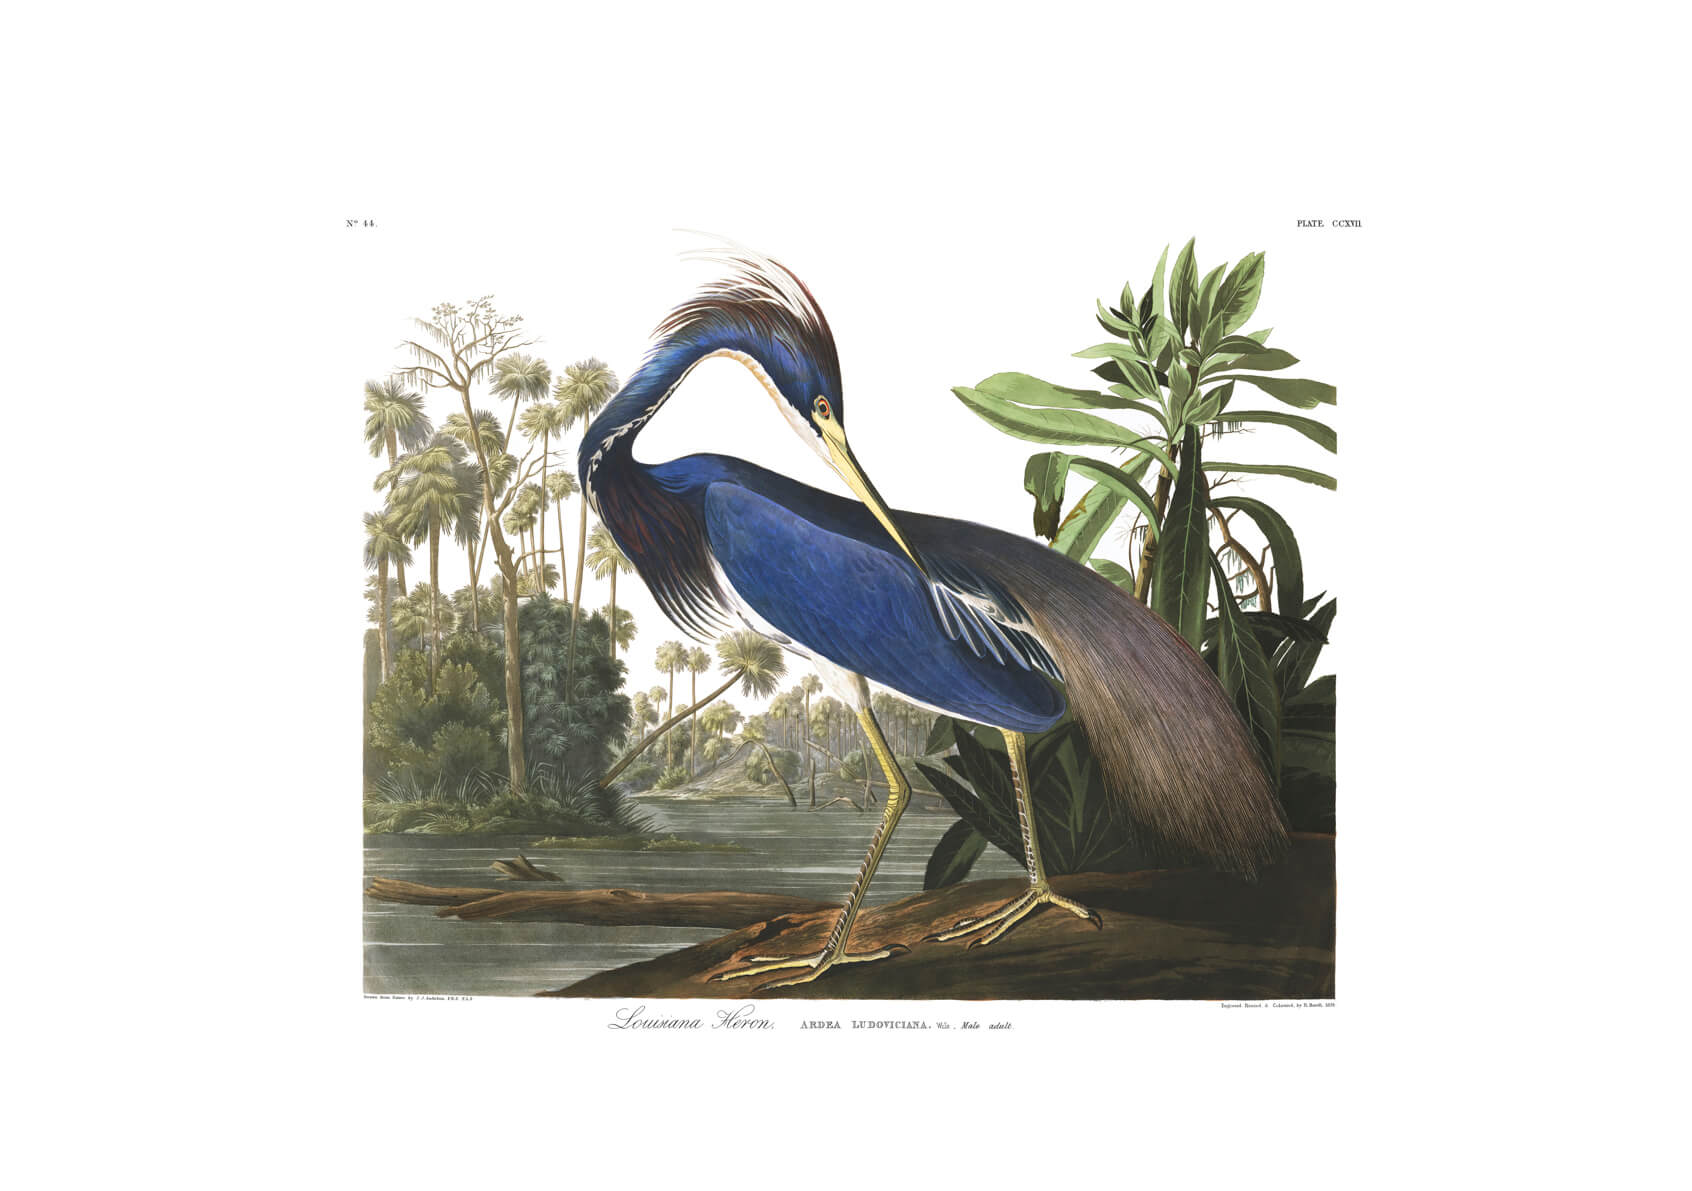 John James Audubon - Louisiana Heron from Birds of America